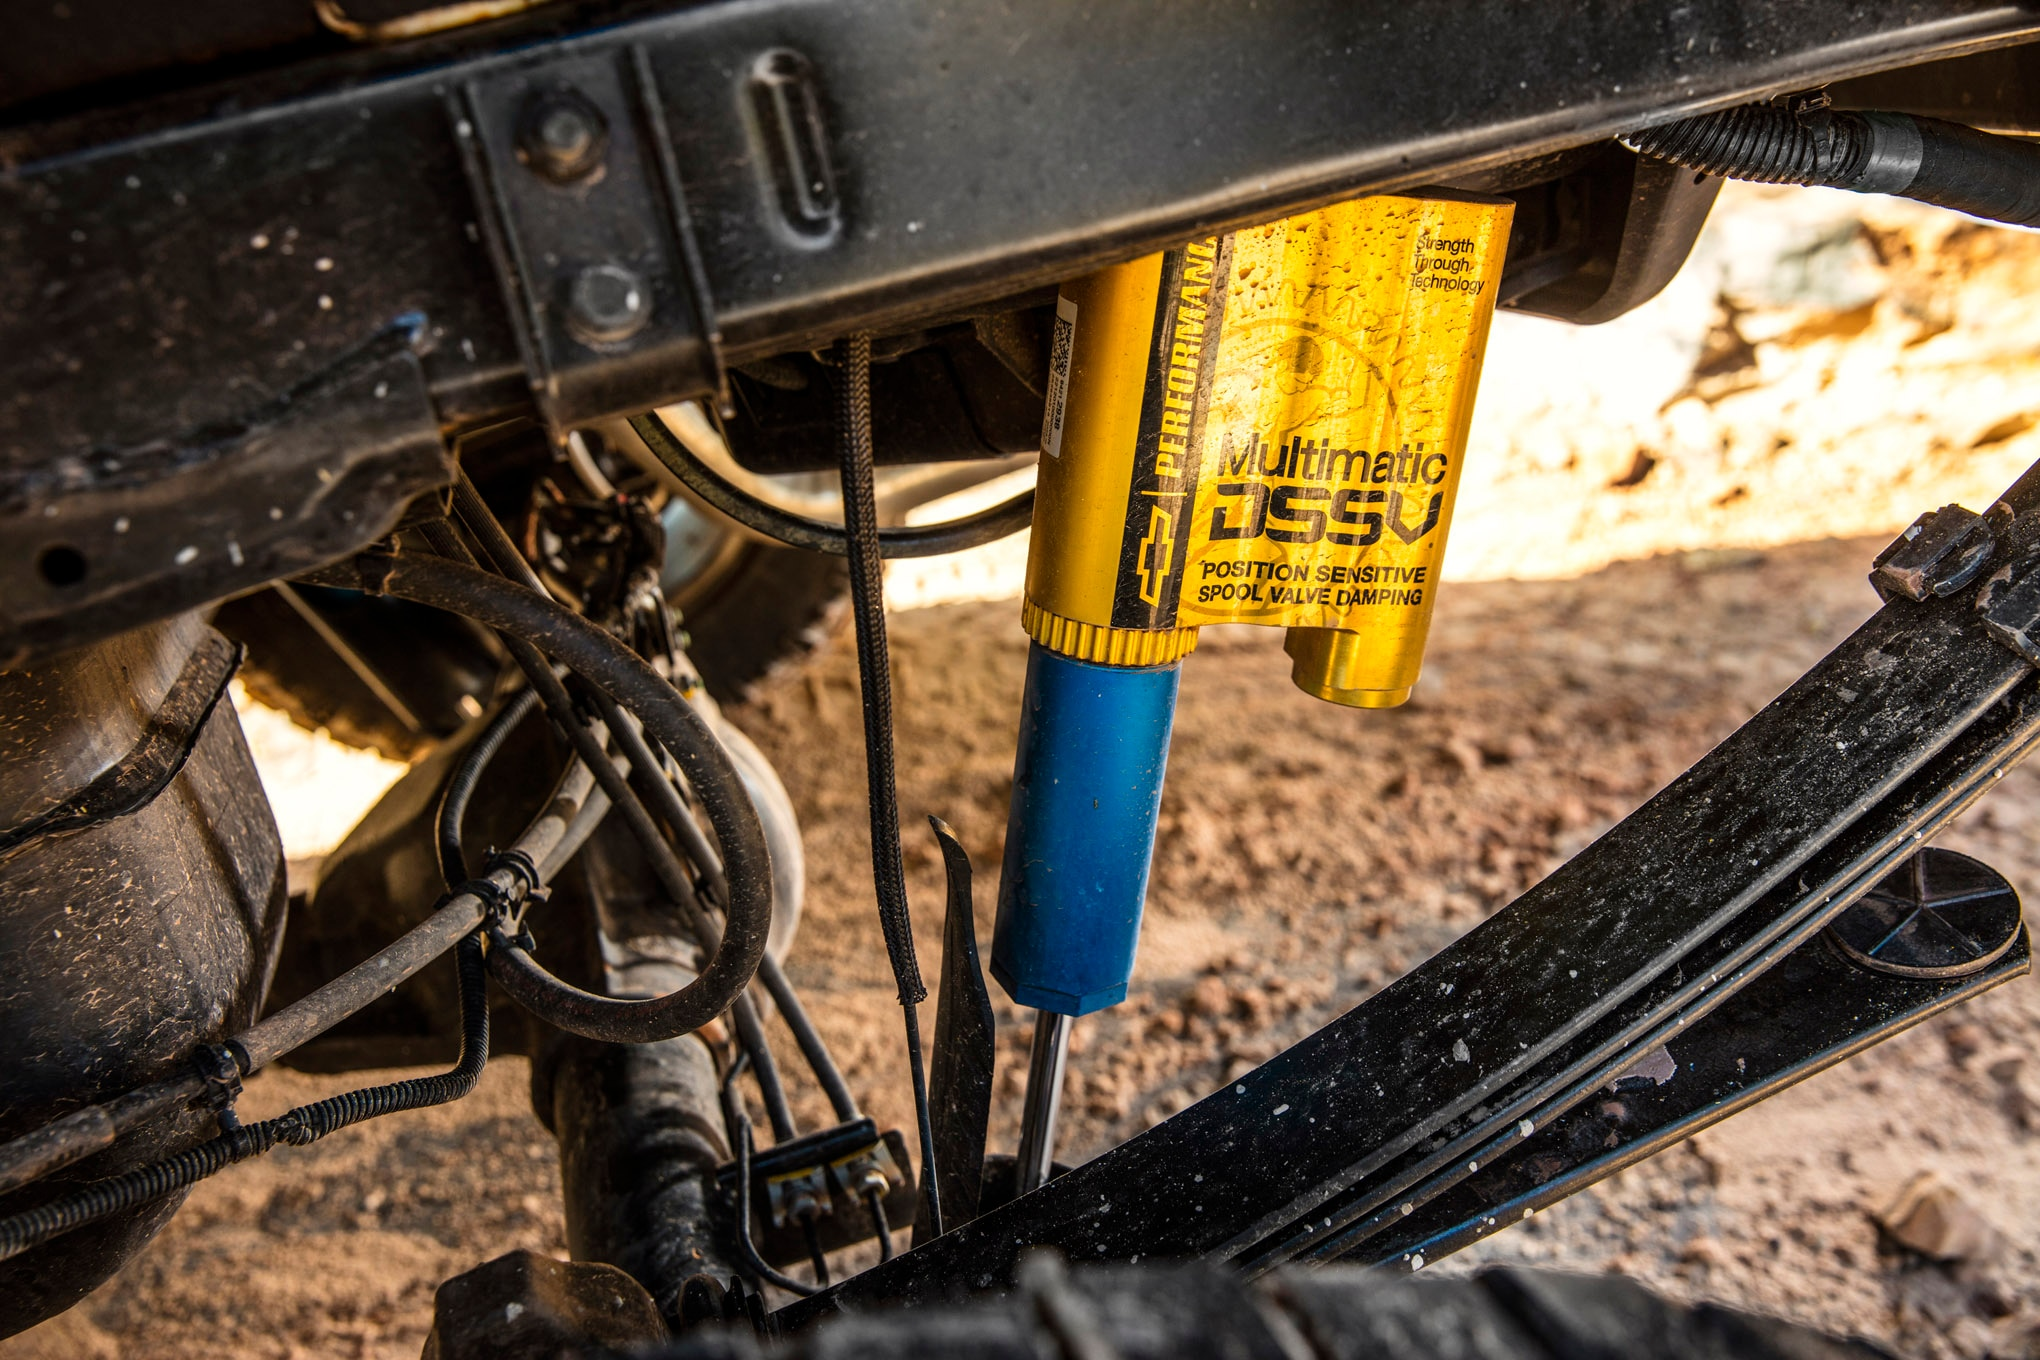 The Multimatic DSSV dampers on the Colorado ZR2 are unlike anything seen before. These shocks have a main body where the shaft rides and the extreme compression spool valve is housed; a middle chamber that houses the on-road compression and rebound spool valves; and a third chamber that acts as a fluid reservoir and separates the nitrogen charge from the hydraulic fluid. As the piston moves through the on-road zone, oil is forced into the spool valves housed in the middle chamber through special orifices in the body. When the shock is compressed outside of the normal zone, the third spool valve mounted on the shaft takes over damping duties. And during extreme rebound situations, such as having the wheels off of the ground, a special rebound valve at the base of the main body controls the motion. All of this combines to create a damper that works exceedingly well on the highway and in the dirt, with almost no compromise.